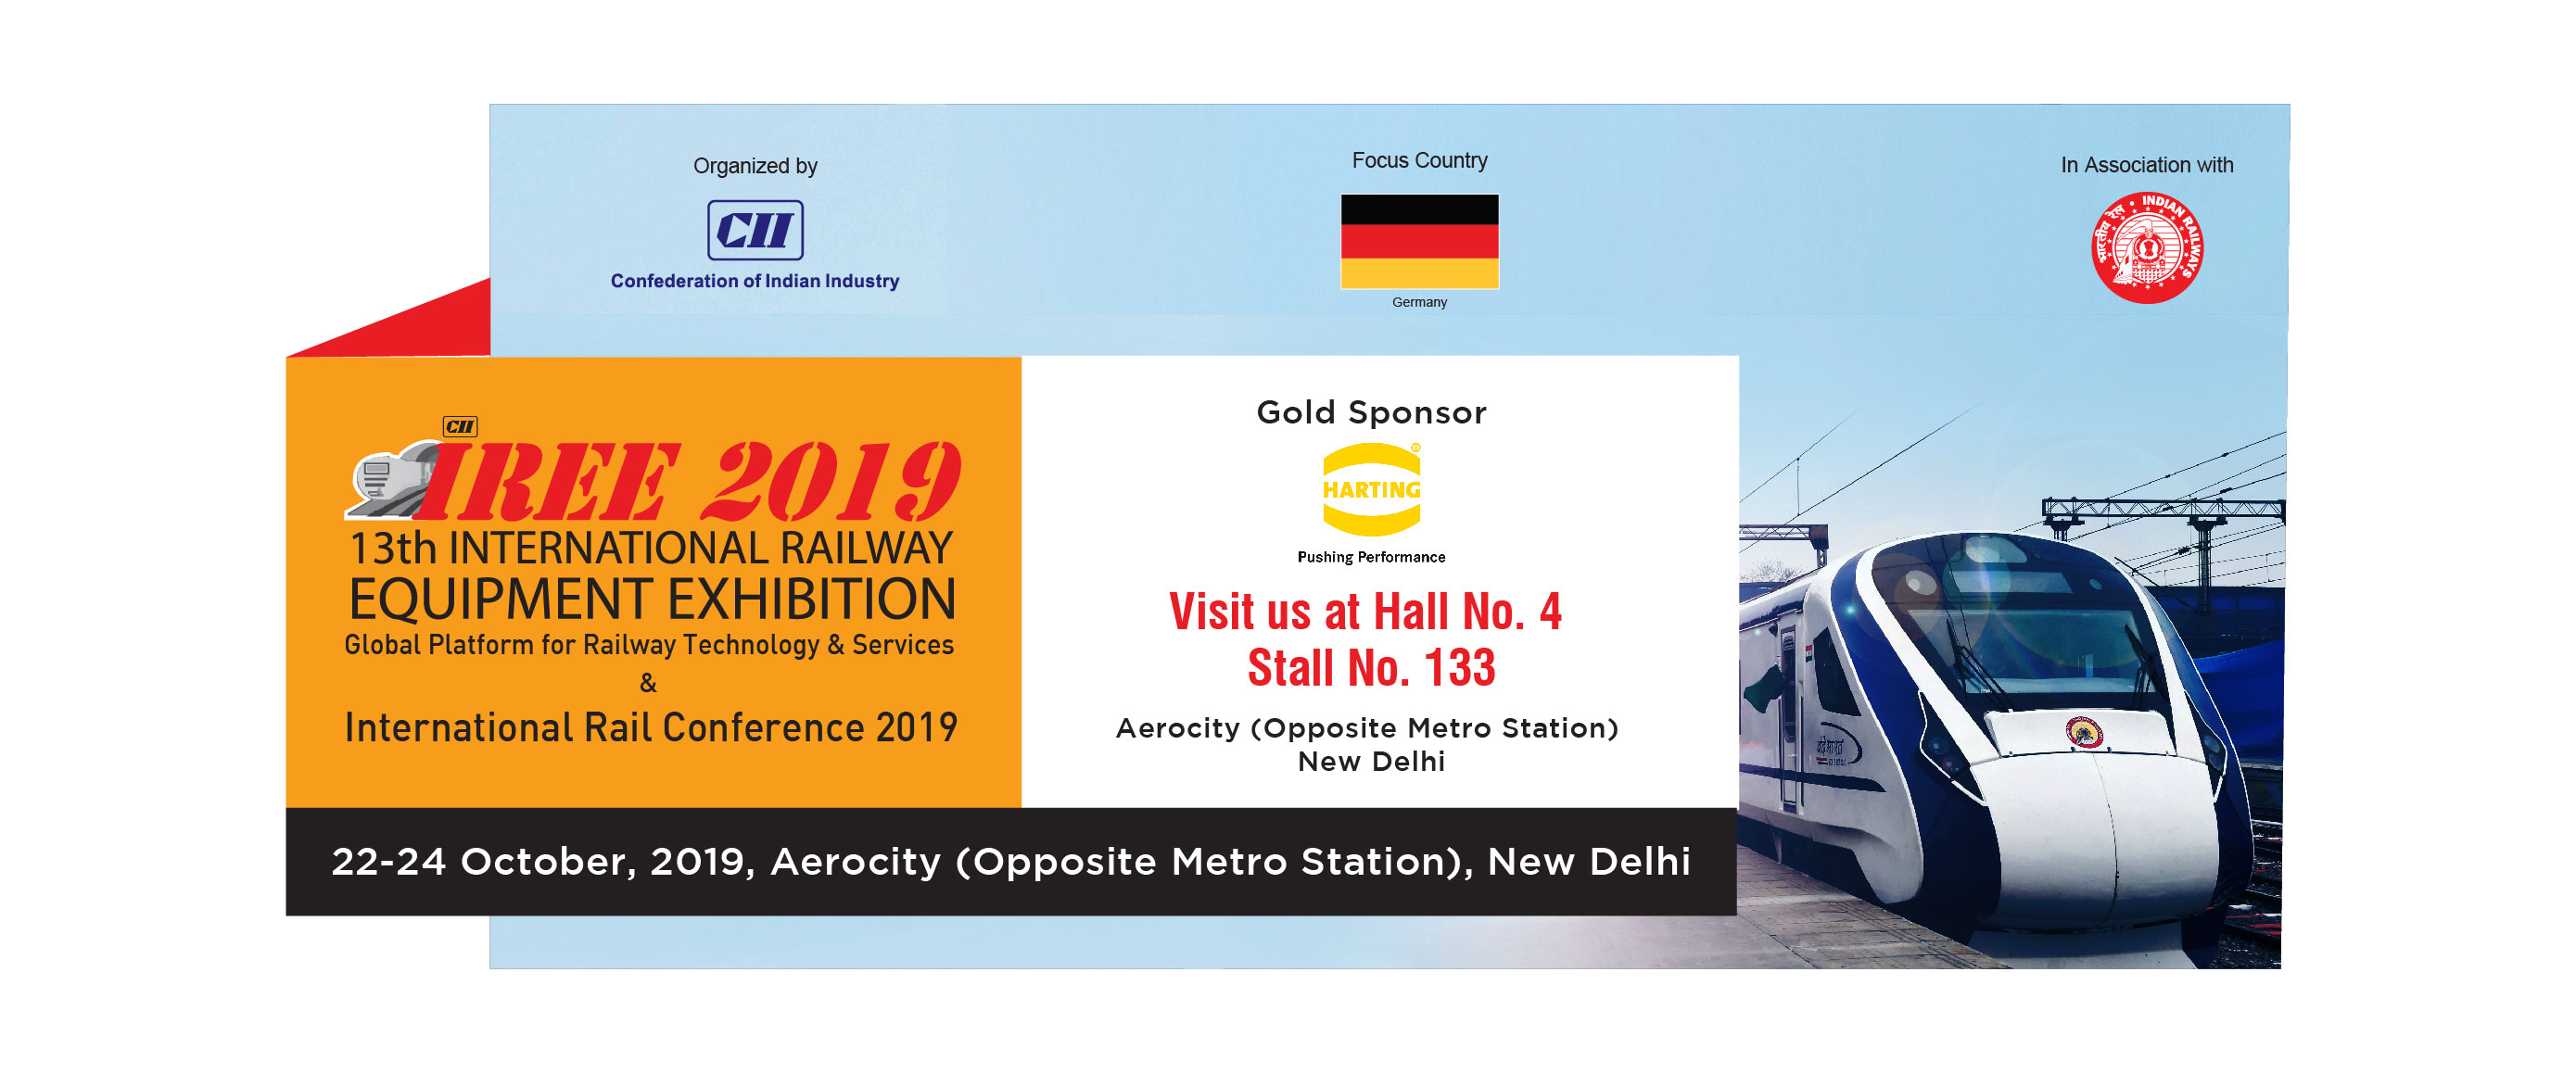 IREE 2019 HARTING India as Gold Sponsor 22 to 24 Oct 2019 Hall 4 Stall 133